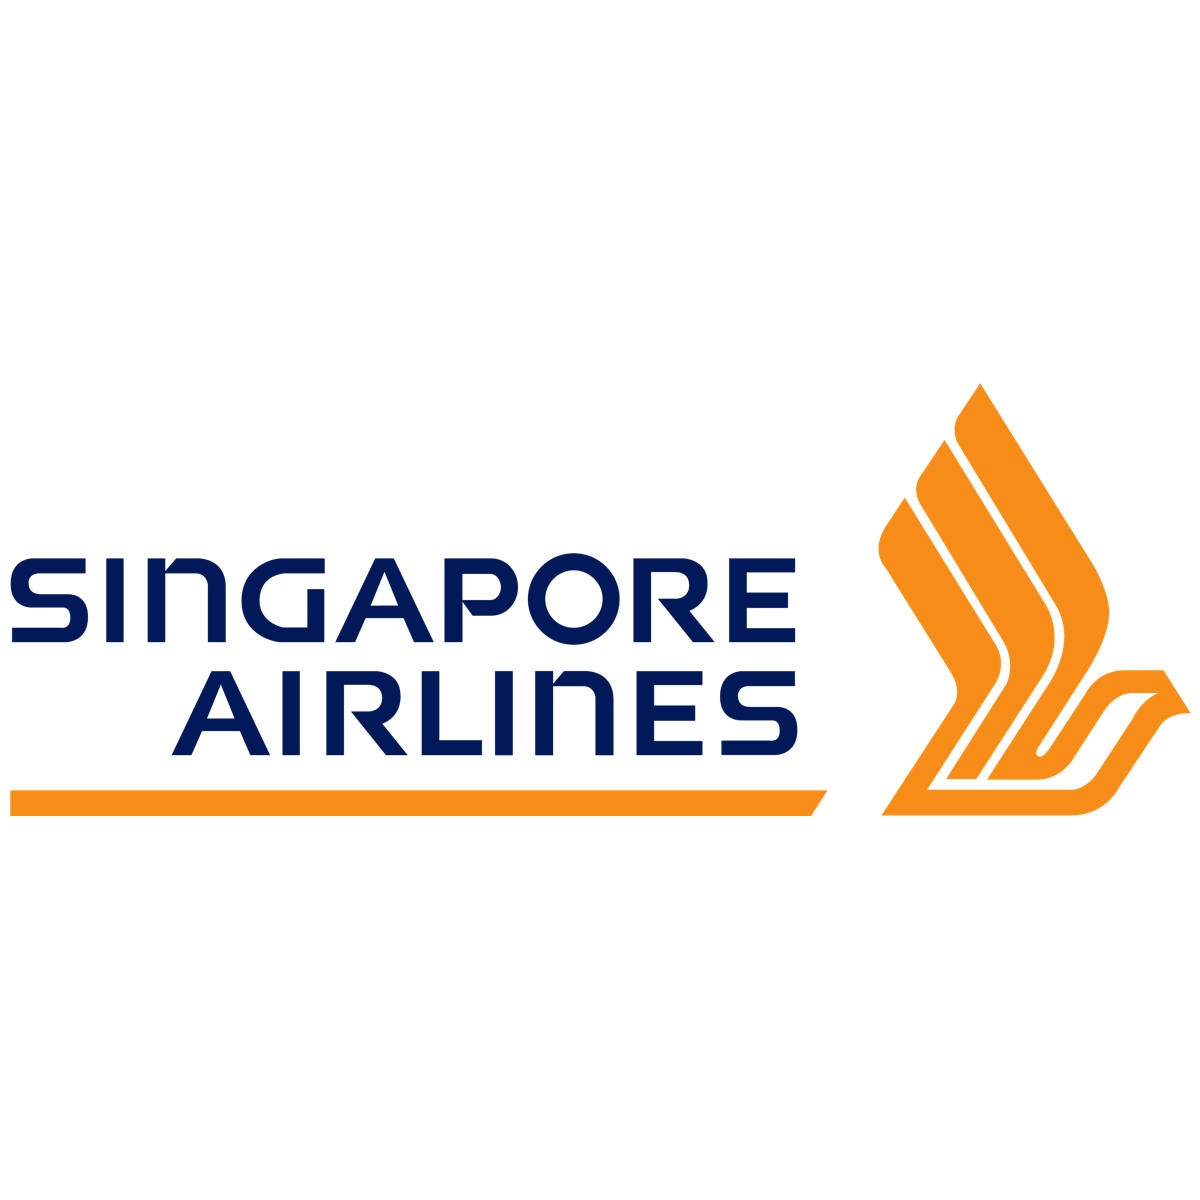 Singapore Airlines (SIA) - Maybank Kim Eng Research 2018-07-27: The Unending Yield Decline; Downgrade To Sell